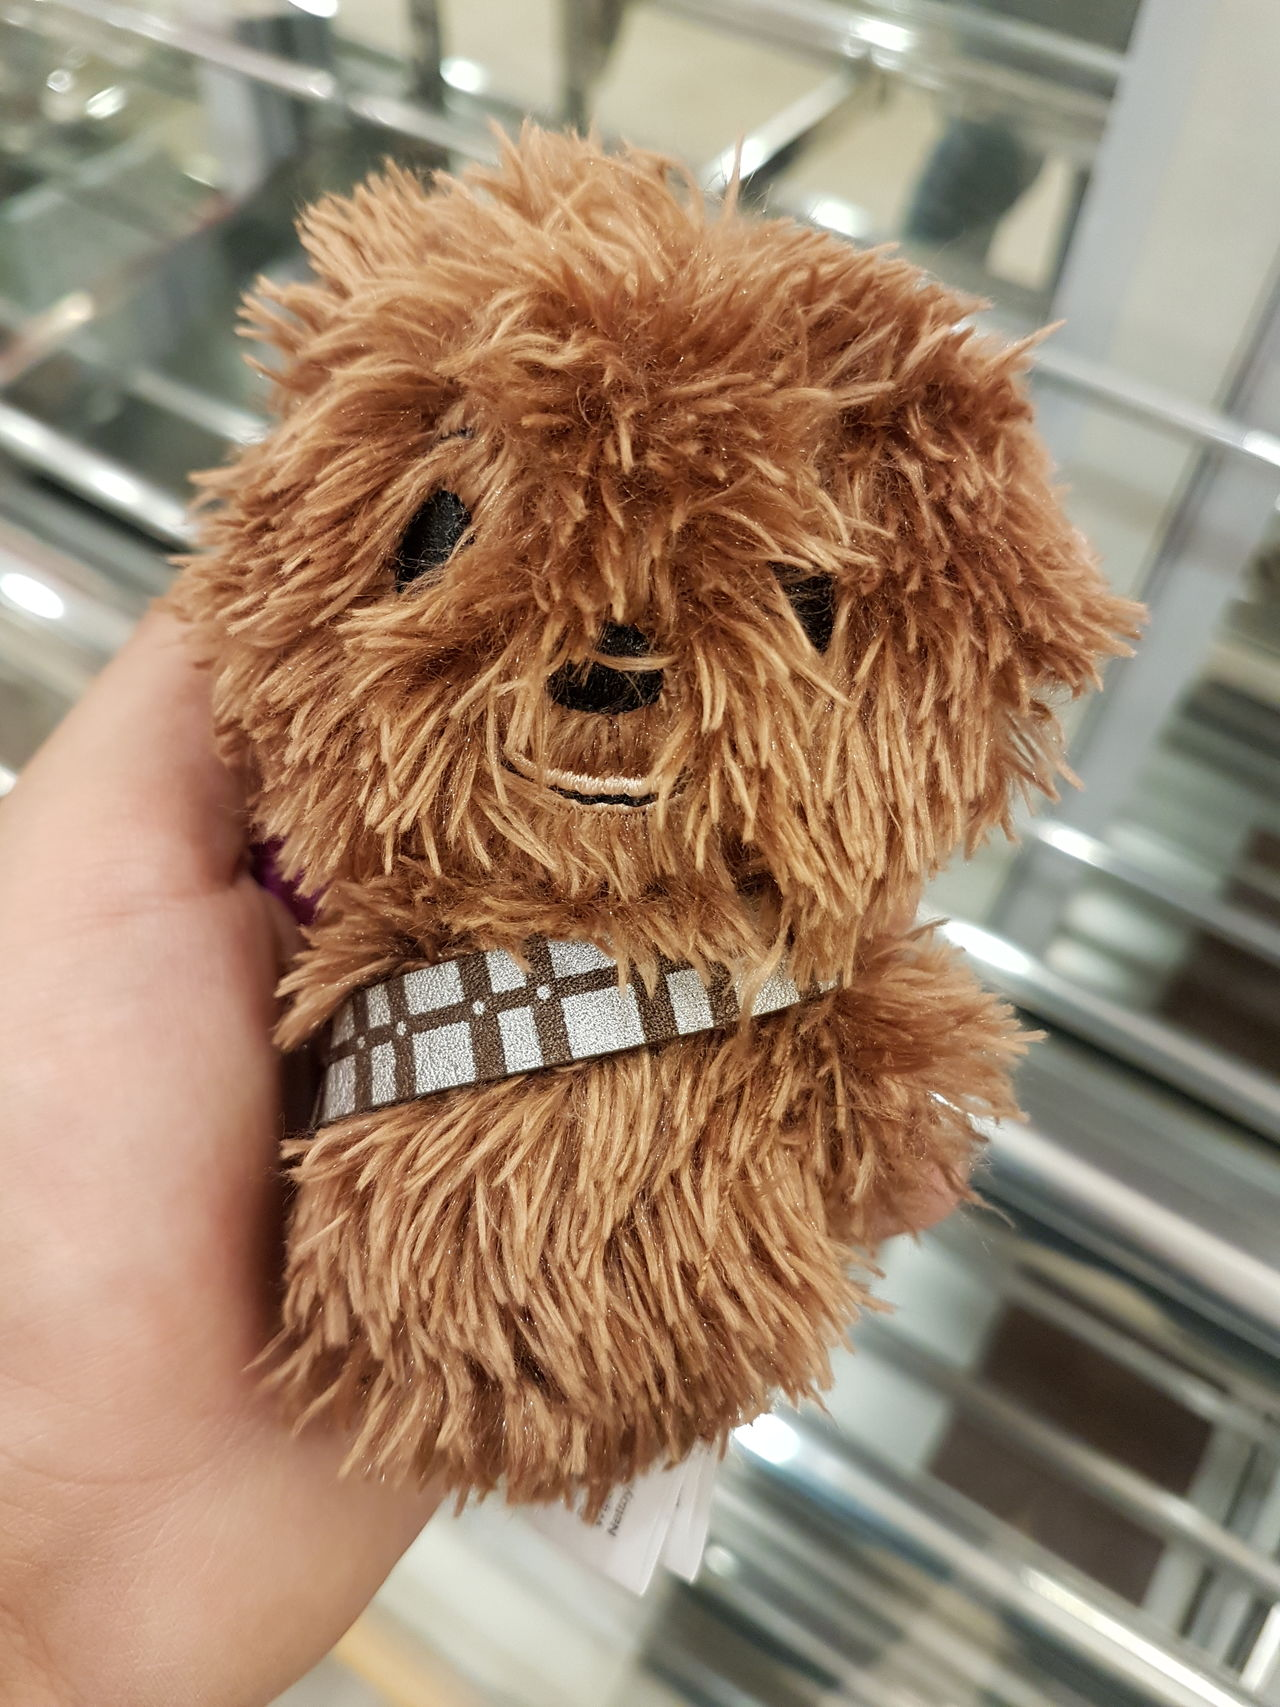 Chewbacca Starwars Close-up No People Teddy Toy Toyphotography Kids Indoors  Day Human Hand